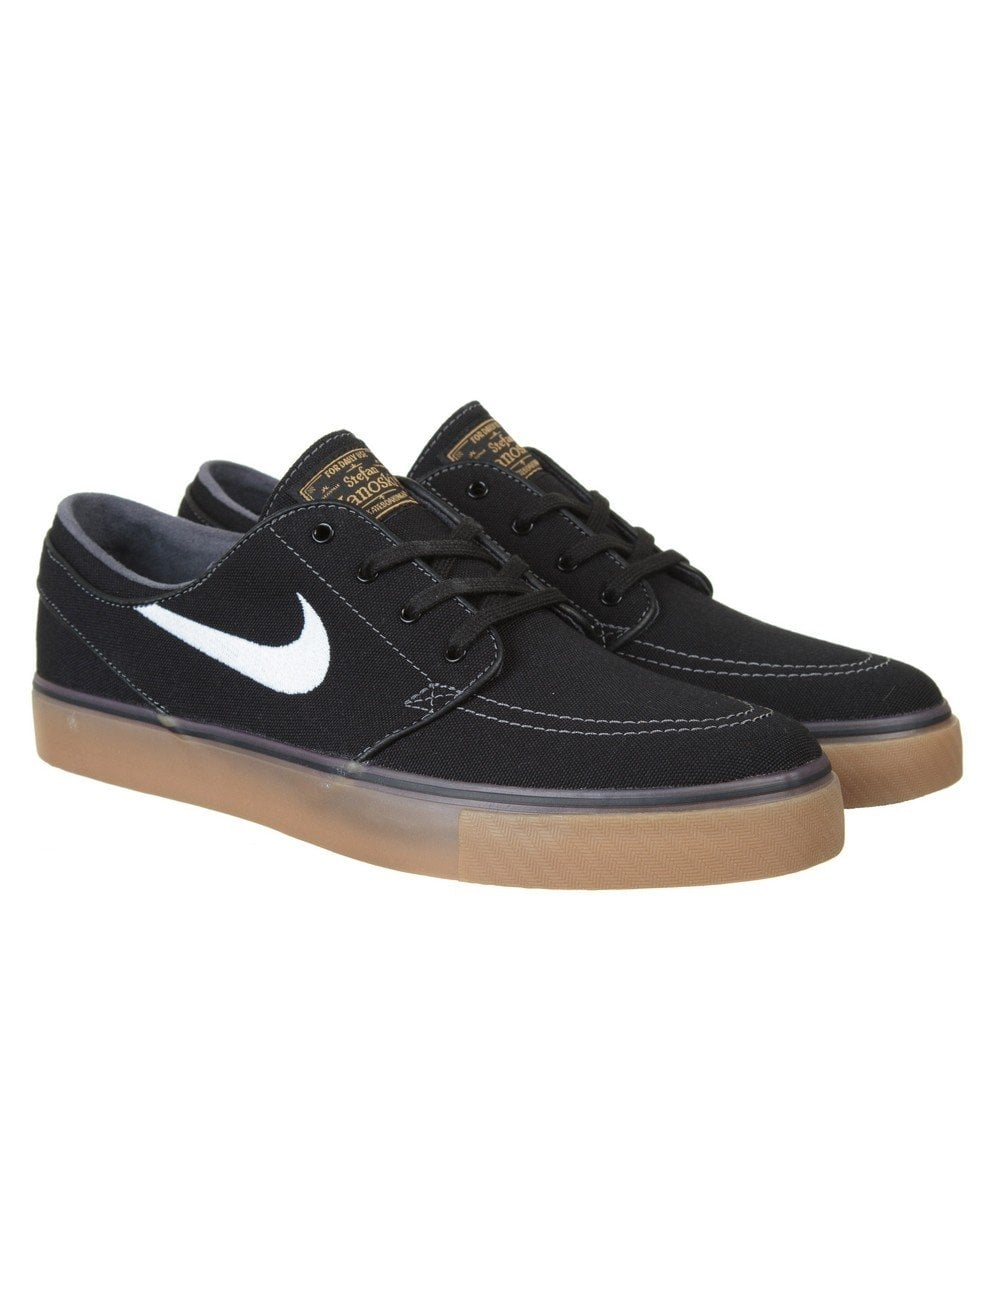 footwear uk cheap sale sports shoes Stefan Janoski Shoes - Black/Gum Sole